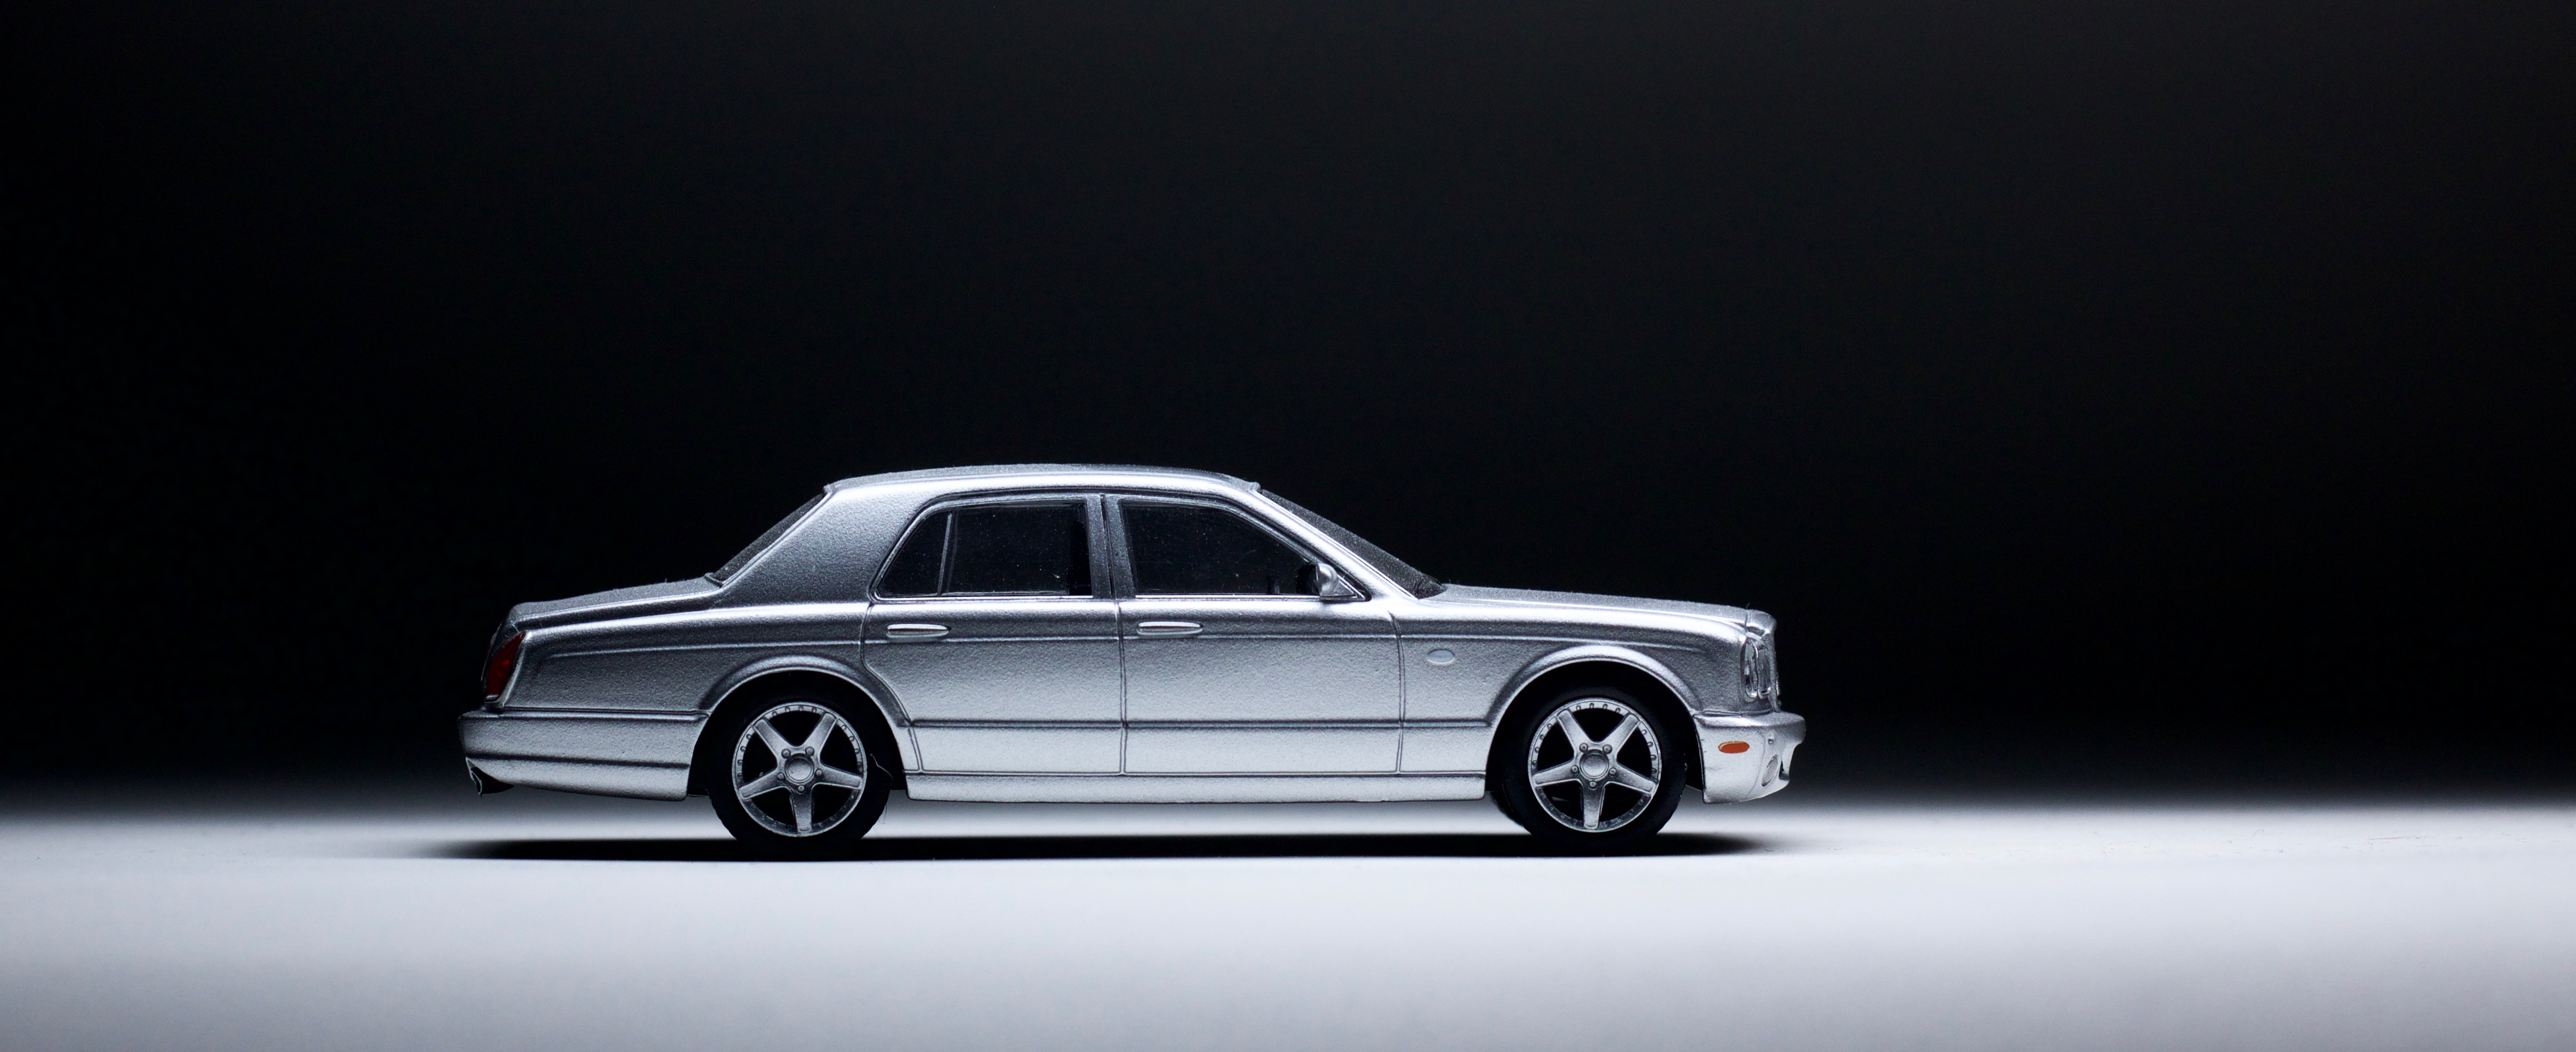 cazana in bentley arnage cars the sale t used uk for